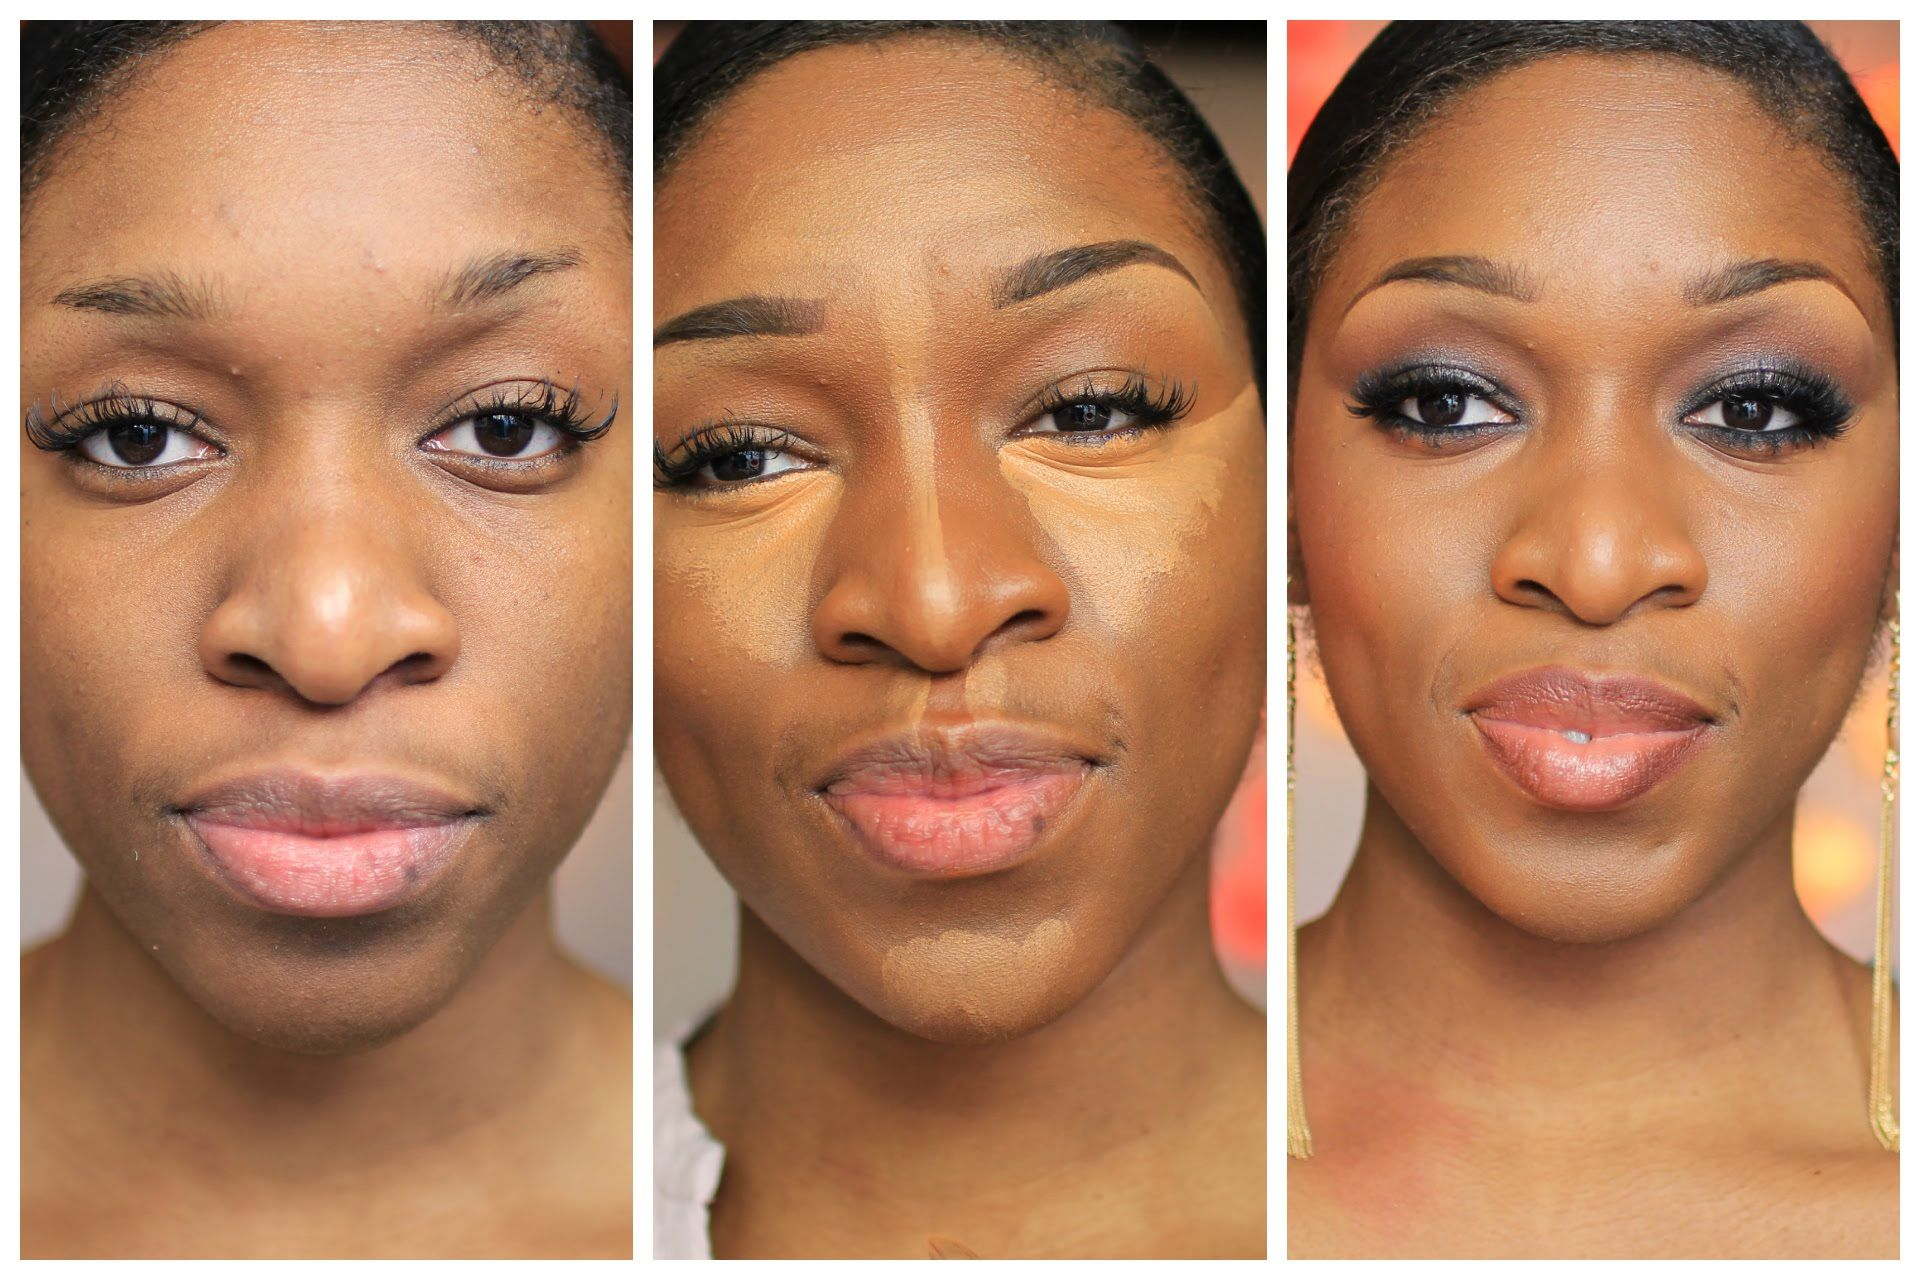 MAQUILLAGE PEAU NOIRE EBOOK DOWNLOAD